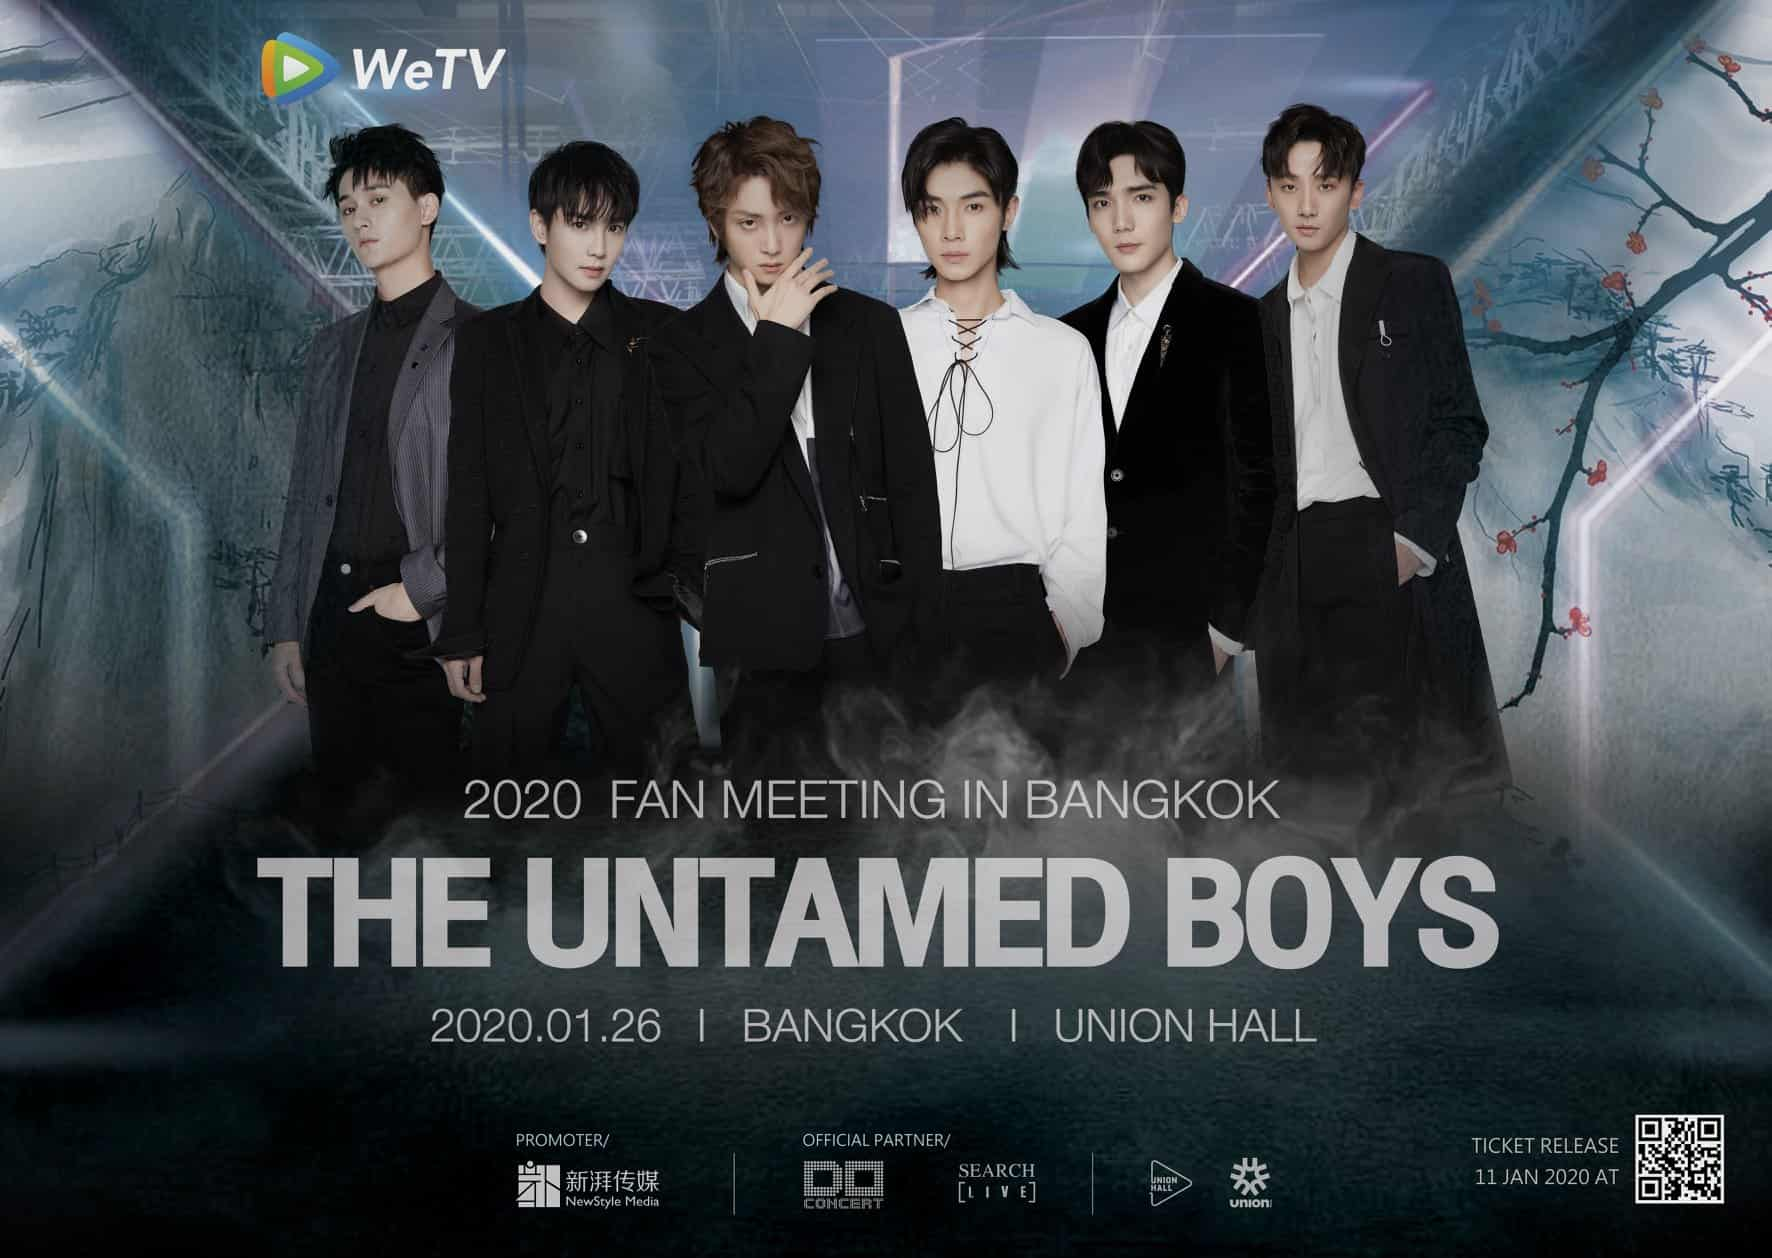 THE UNTAMED BOYS